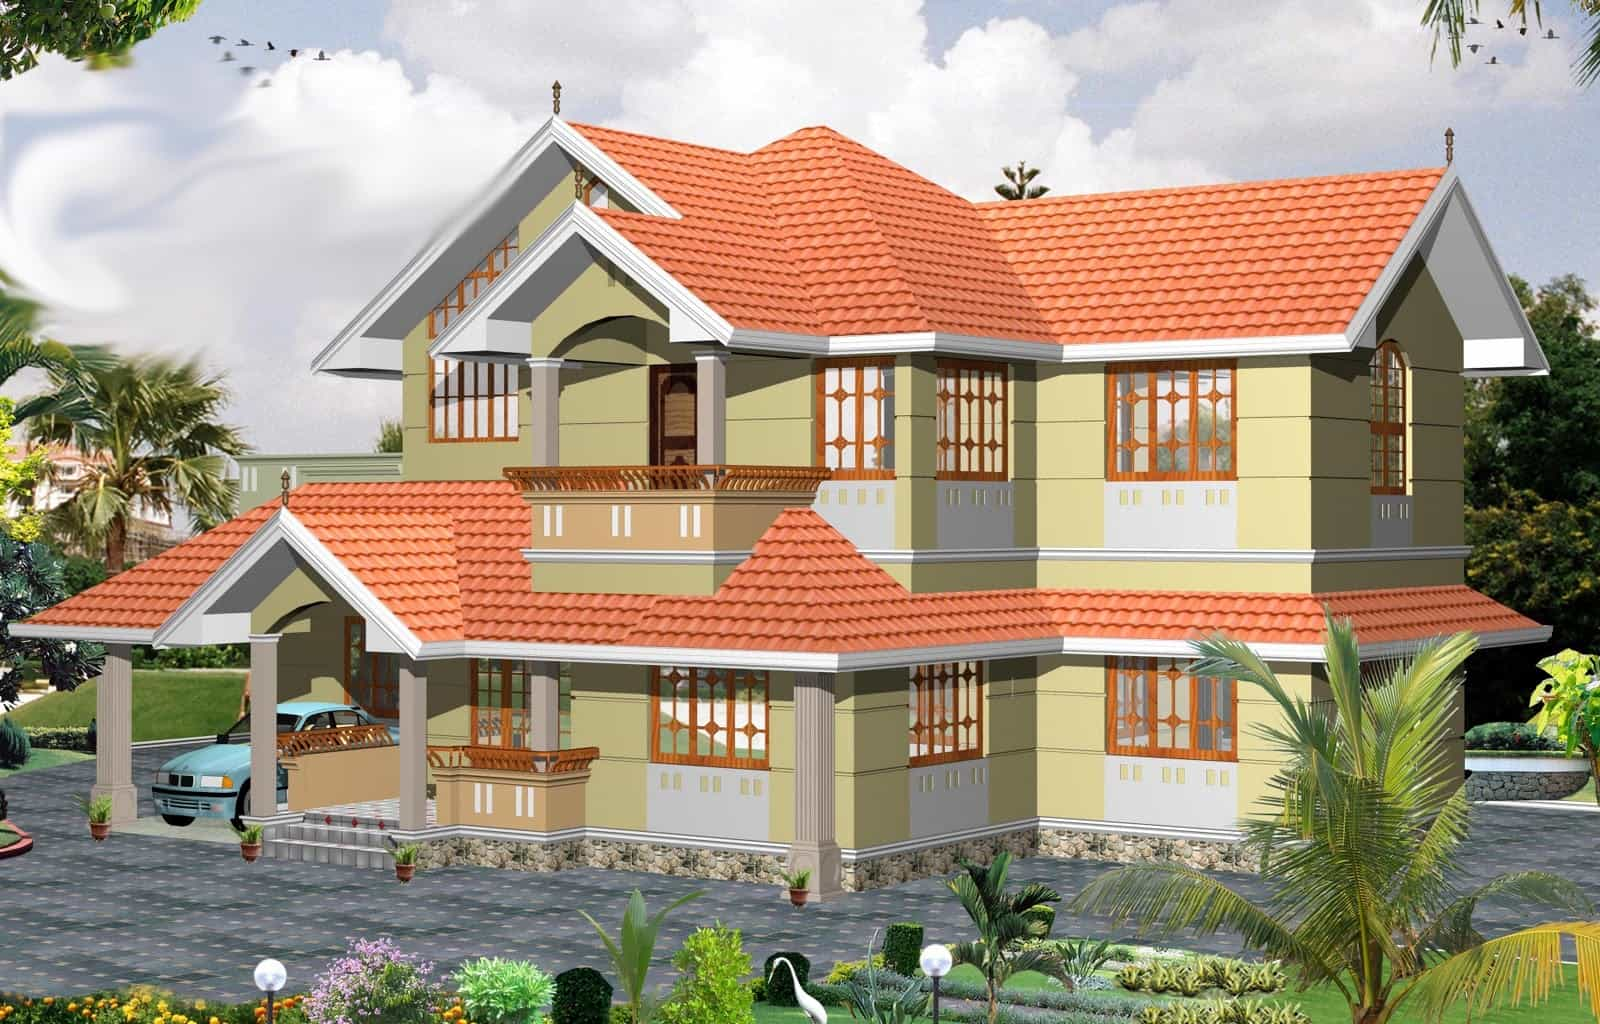 Traditional 3 bhk kerala villa design at 2000 for 2000 sq ft homes